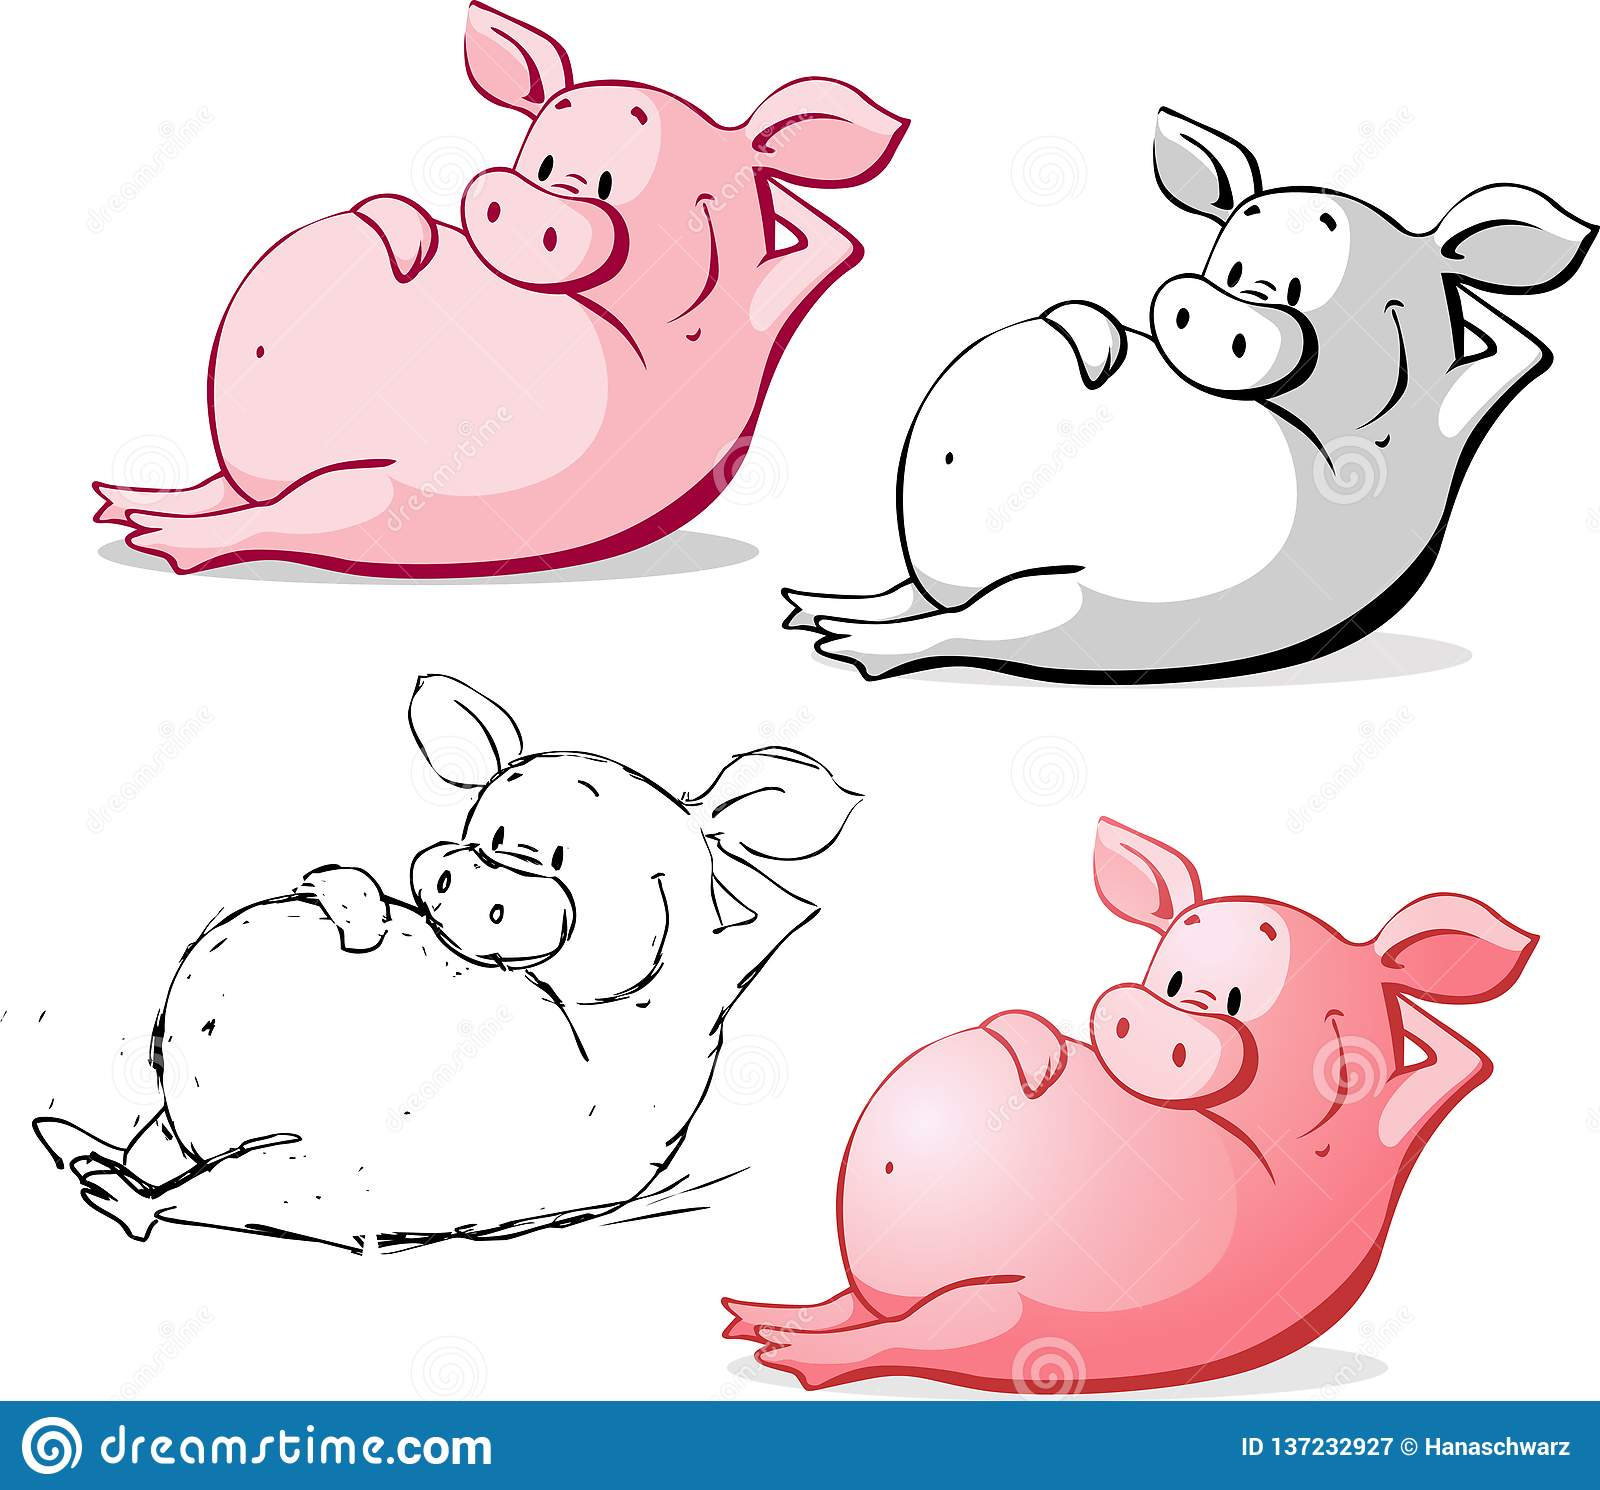 Ping Pig Cartoon Vector Illustration mignonne